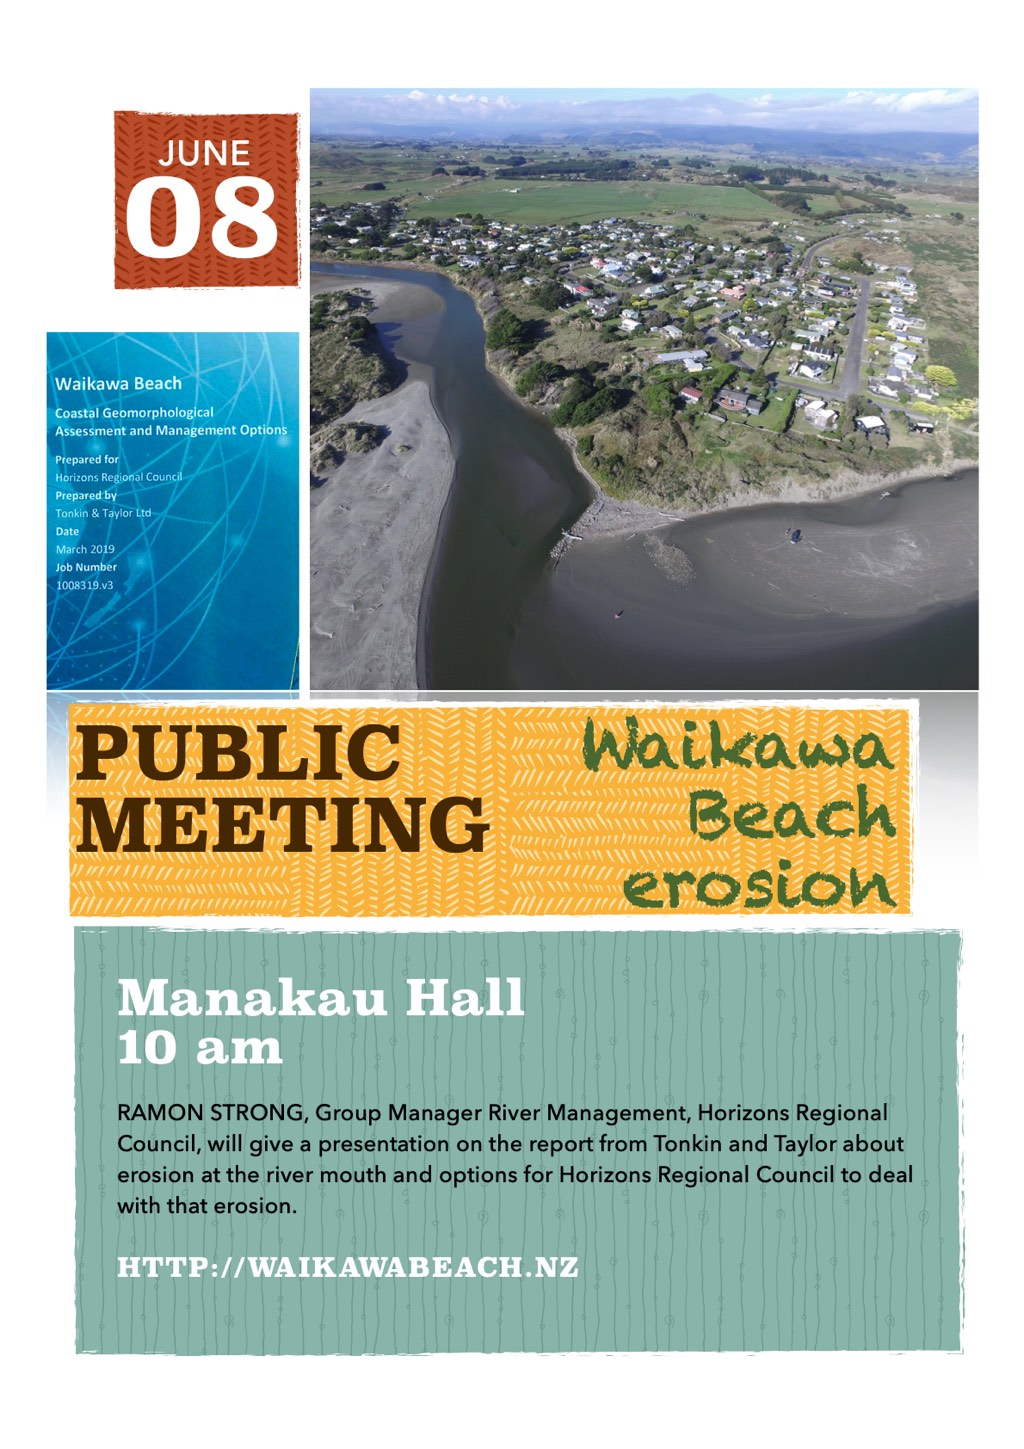 Erosion meeting flyer.